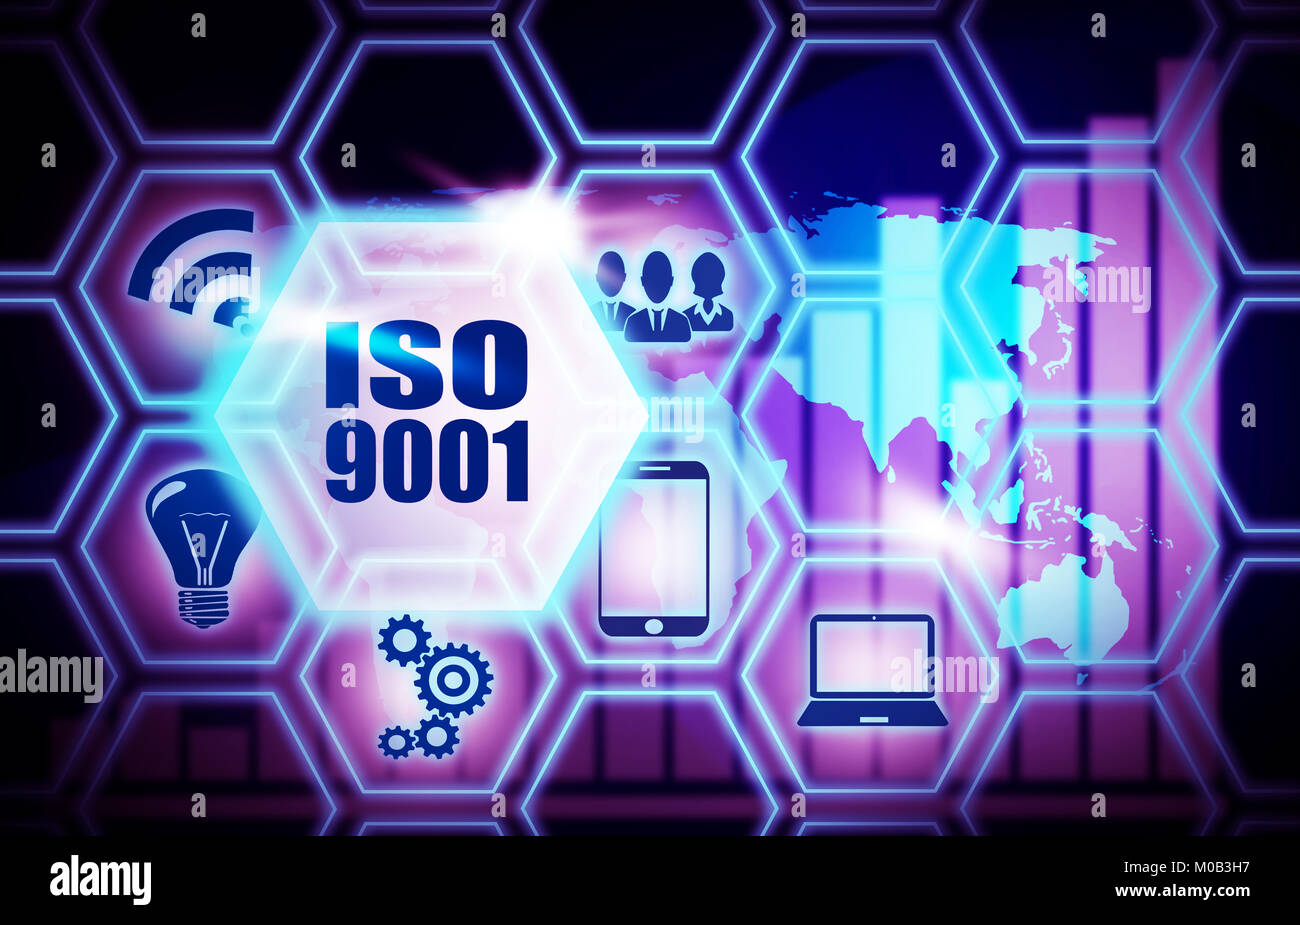 ISO 9001 concept illustration - Stock Image